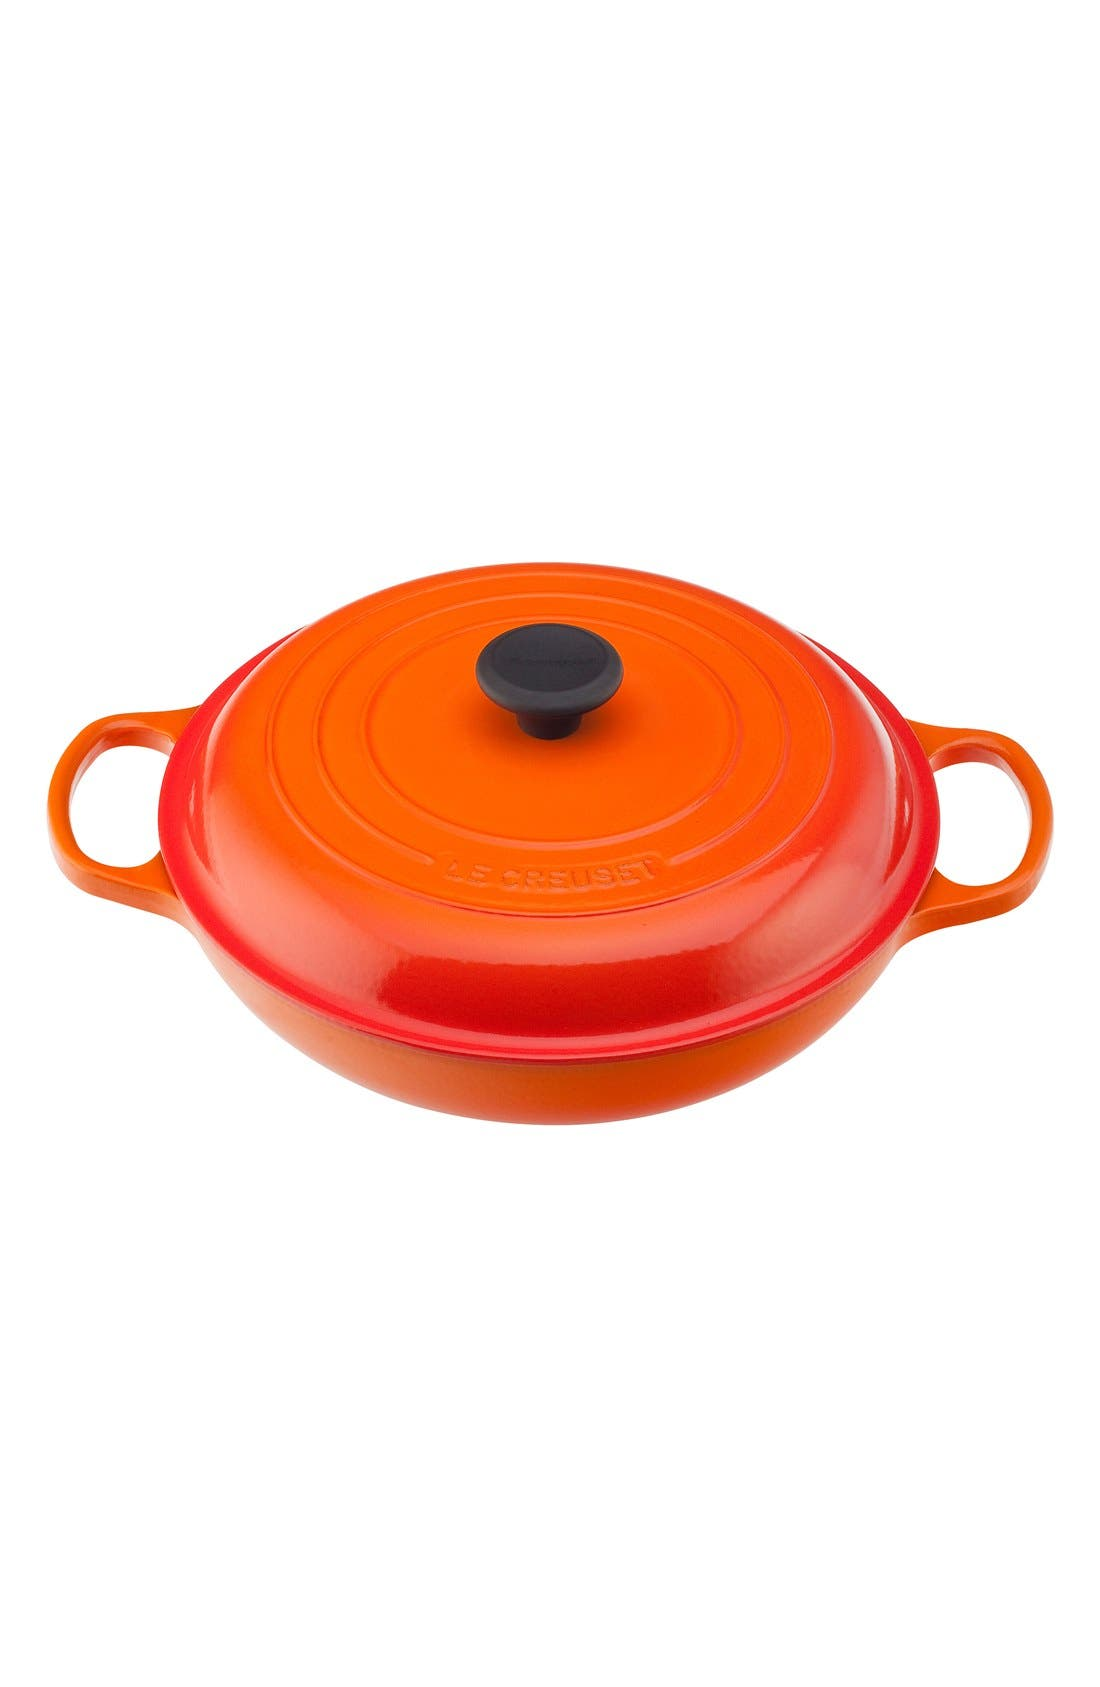 Signature 3 3/4 Quart Enameled Cast Iron Braiser,                             Main thumbnail 1, color,                             Flame